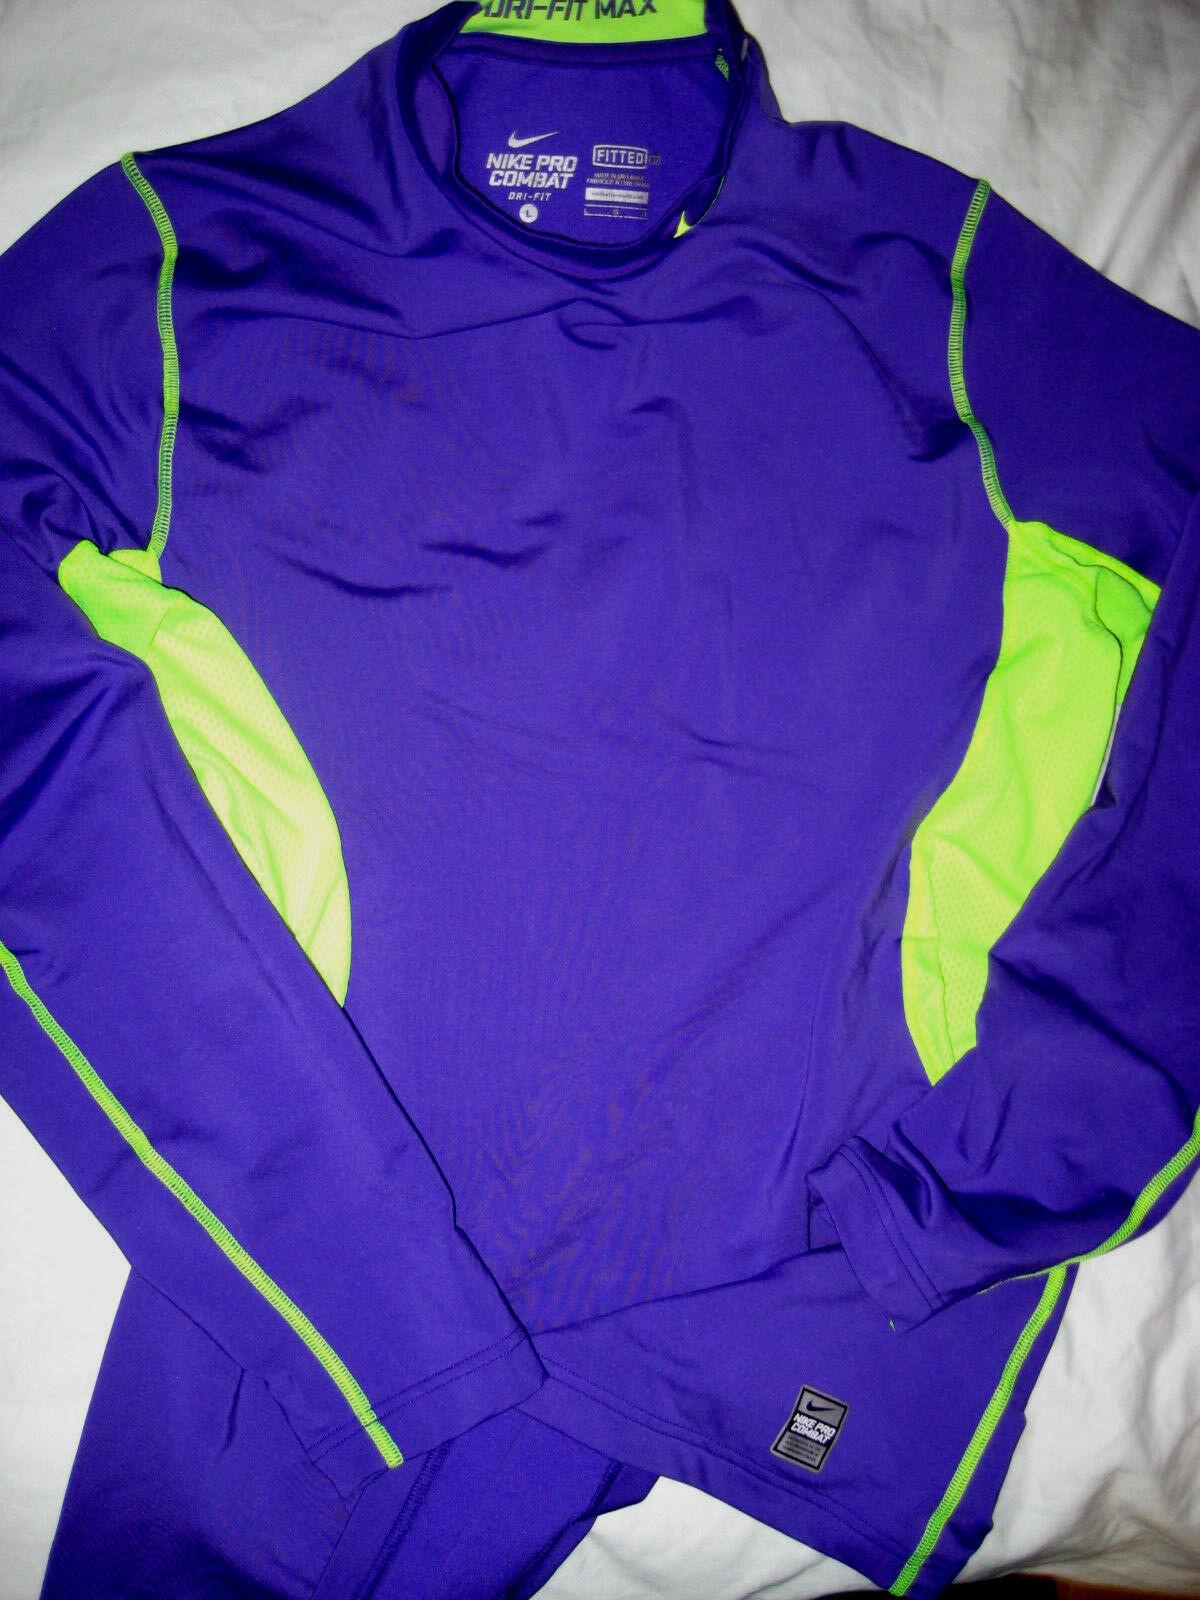 NIKE PRO COMBAT HYPERWARM MAX HIGH VISIBILITY LOGO COMPRESSION SHIRT-FITTED-L